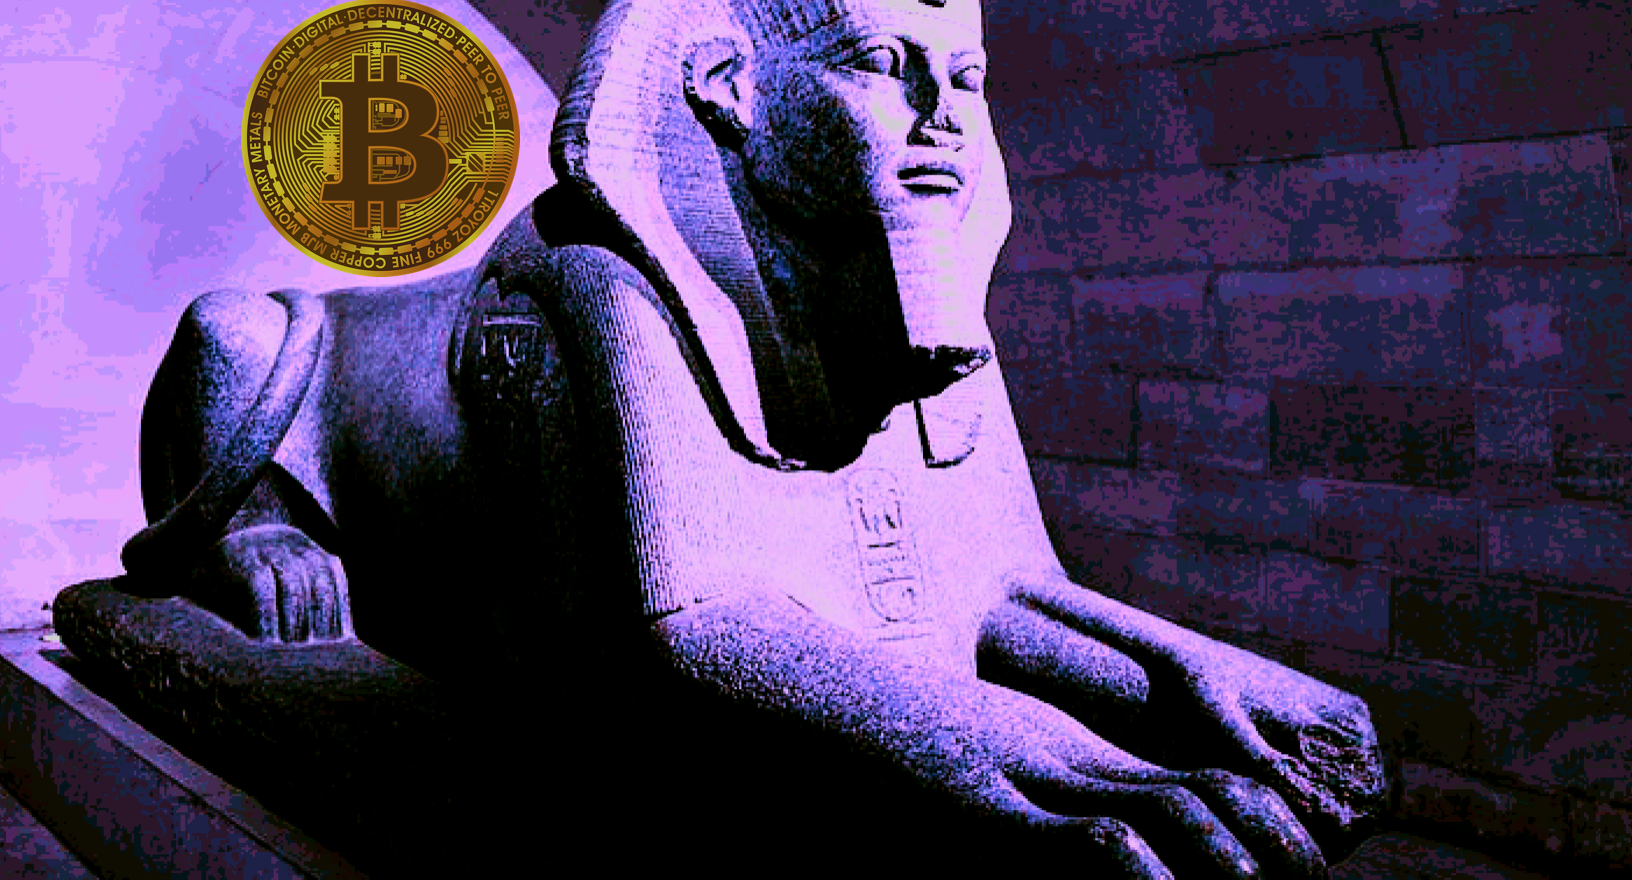 The Sphinx of Wall Street: Goldman-backed Circle Acquires Major Crypto Exchange Poloniex